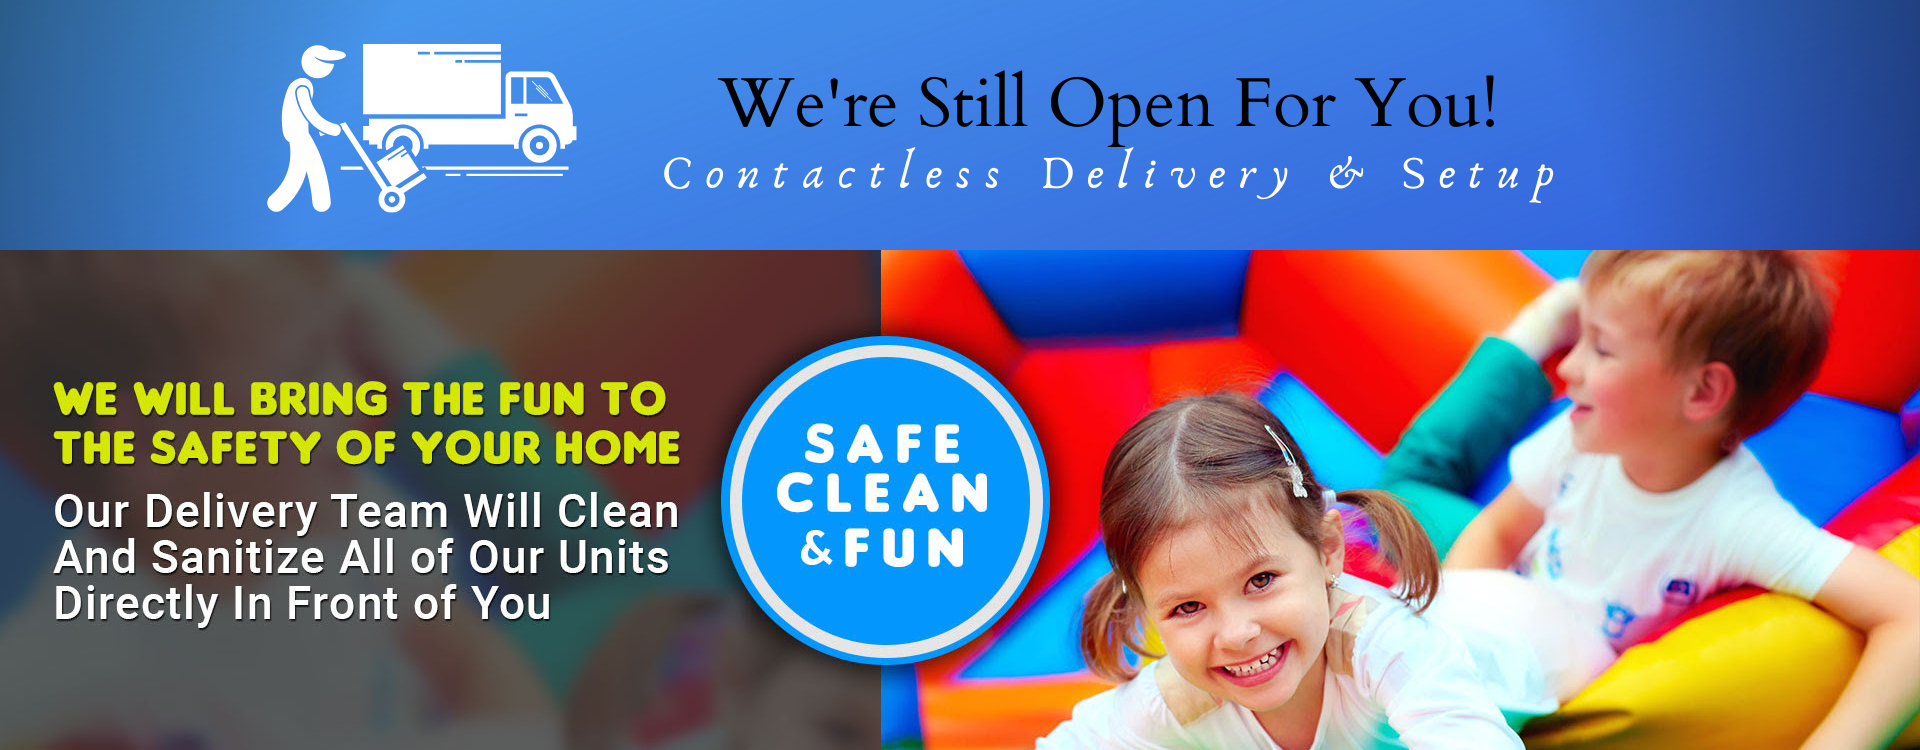 Contactless Spring TX Bounce House Rental  Delivery